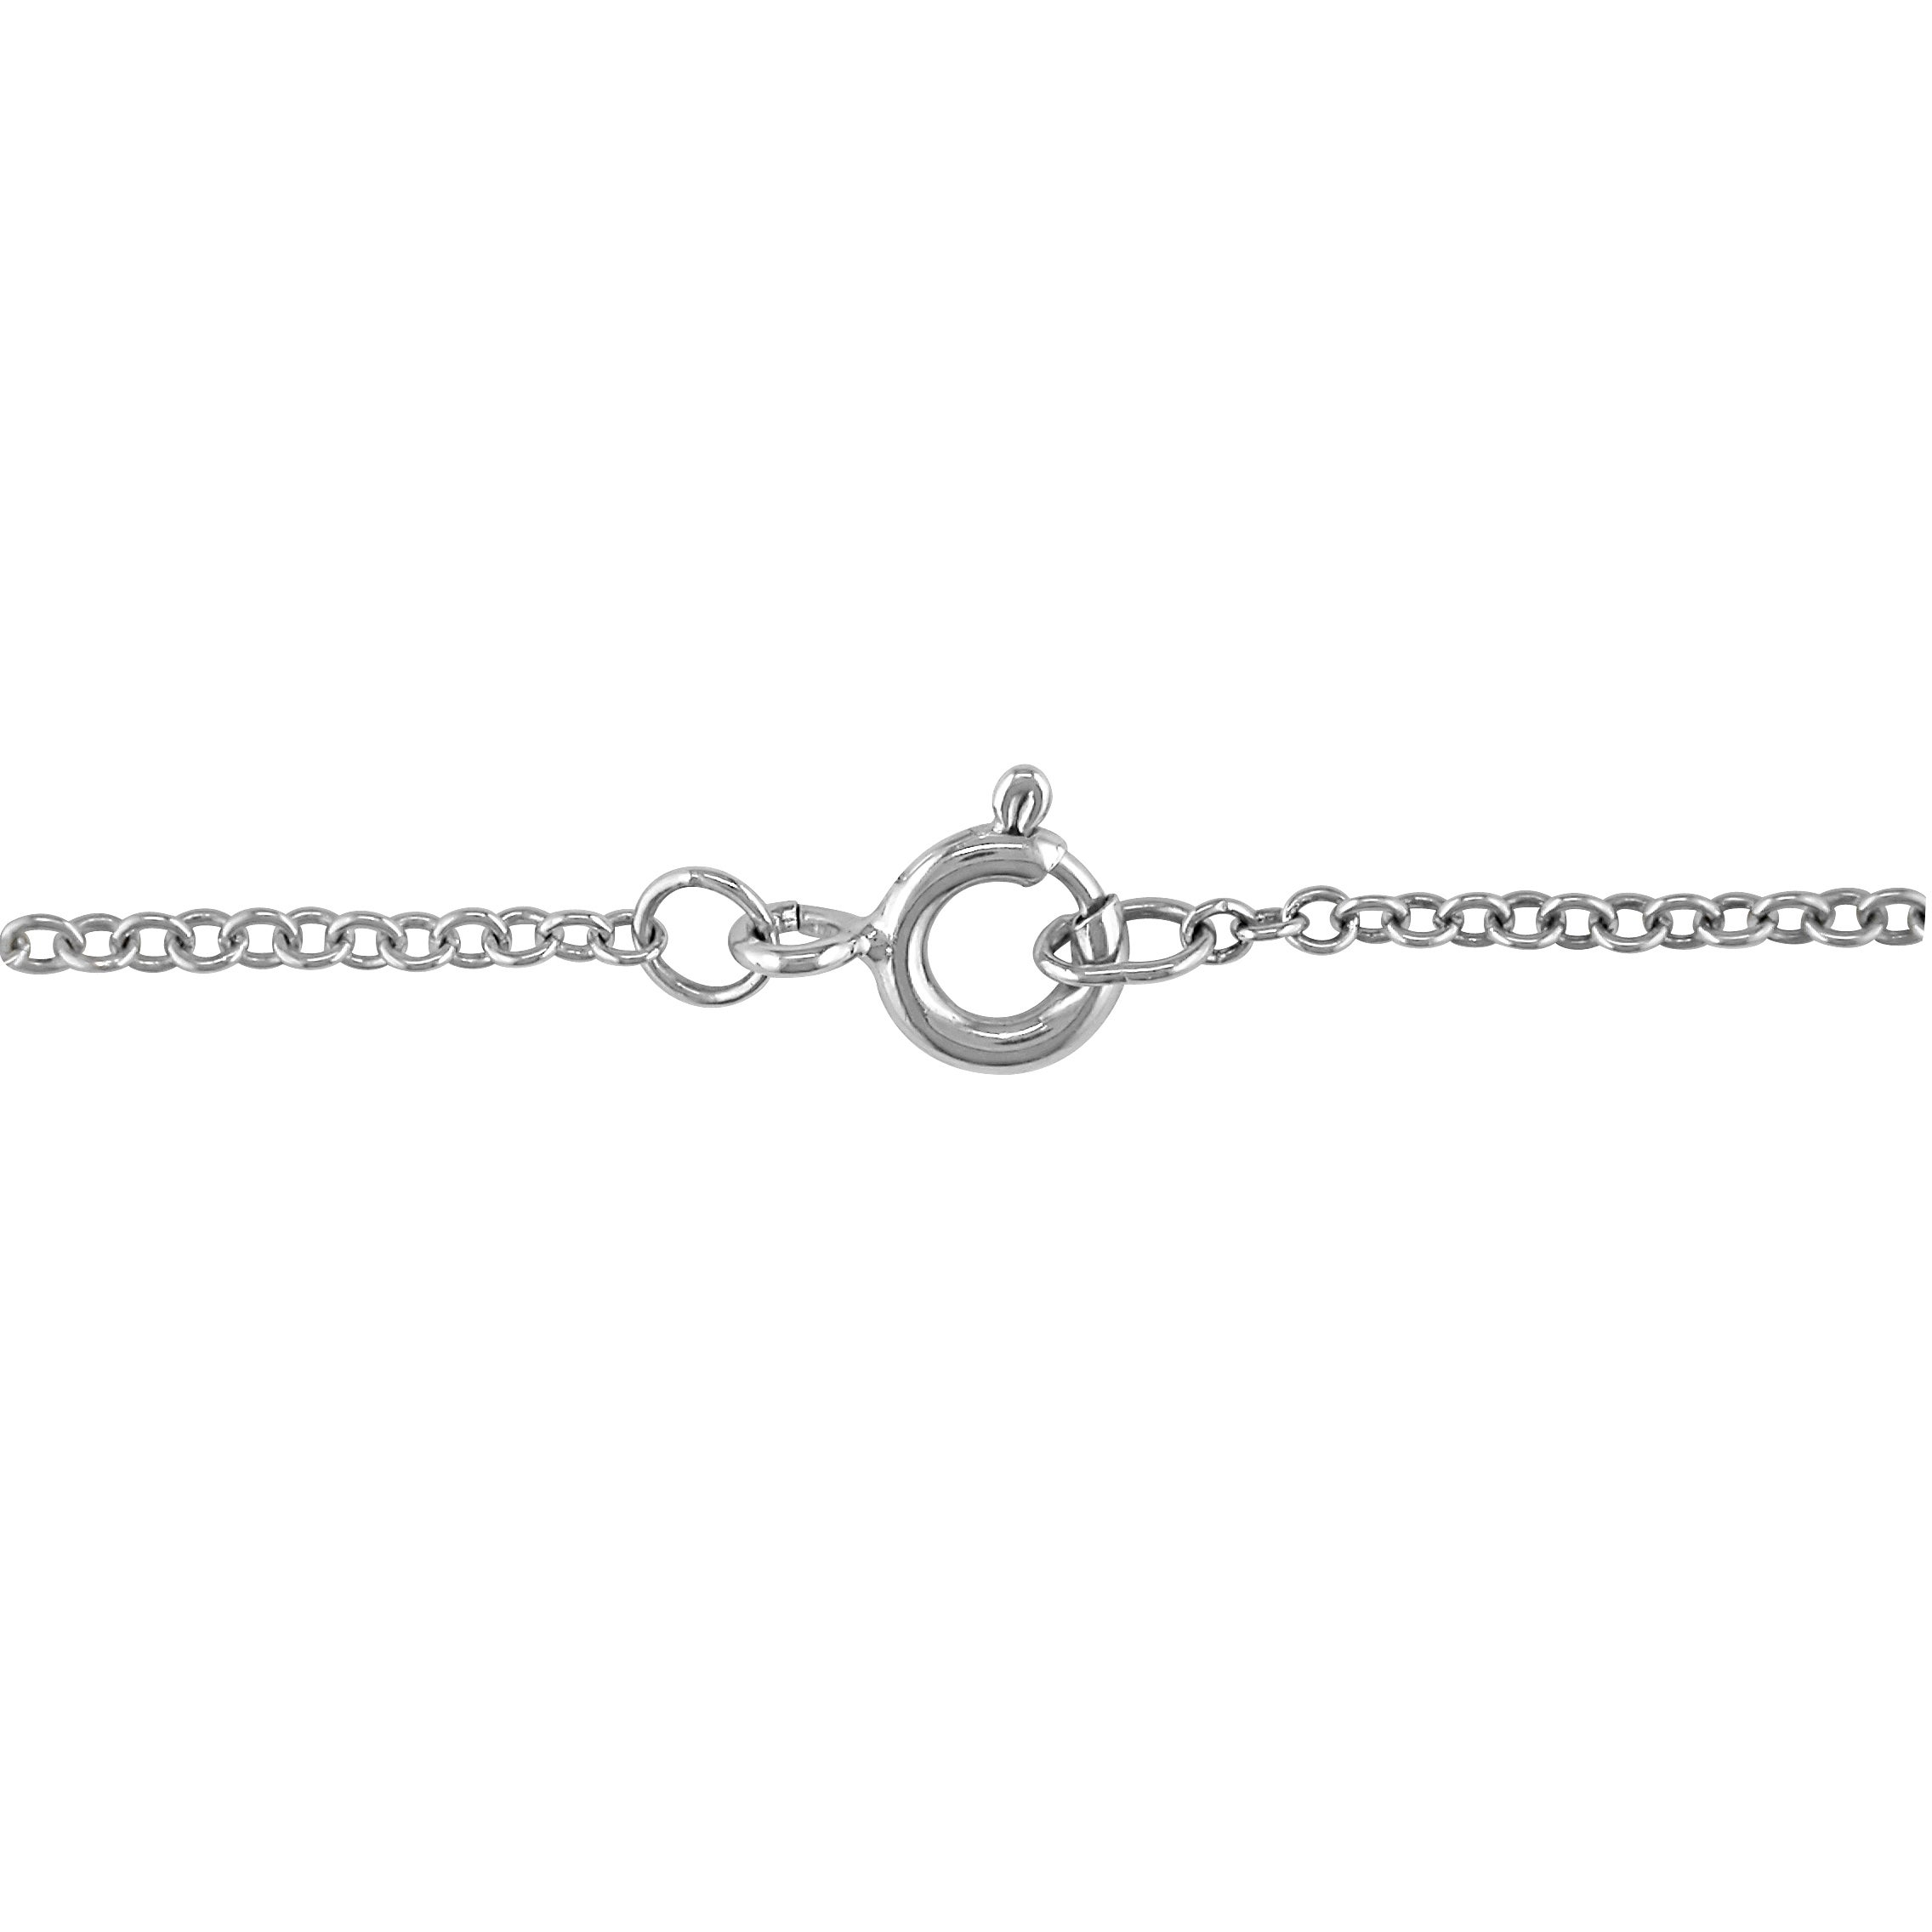 width grams p silver weight mm necklace sterling infinity length cz knot